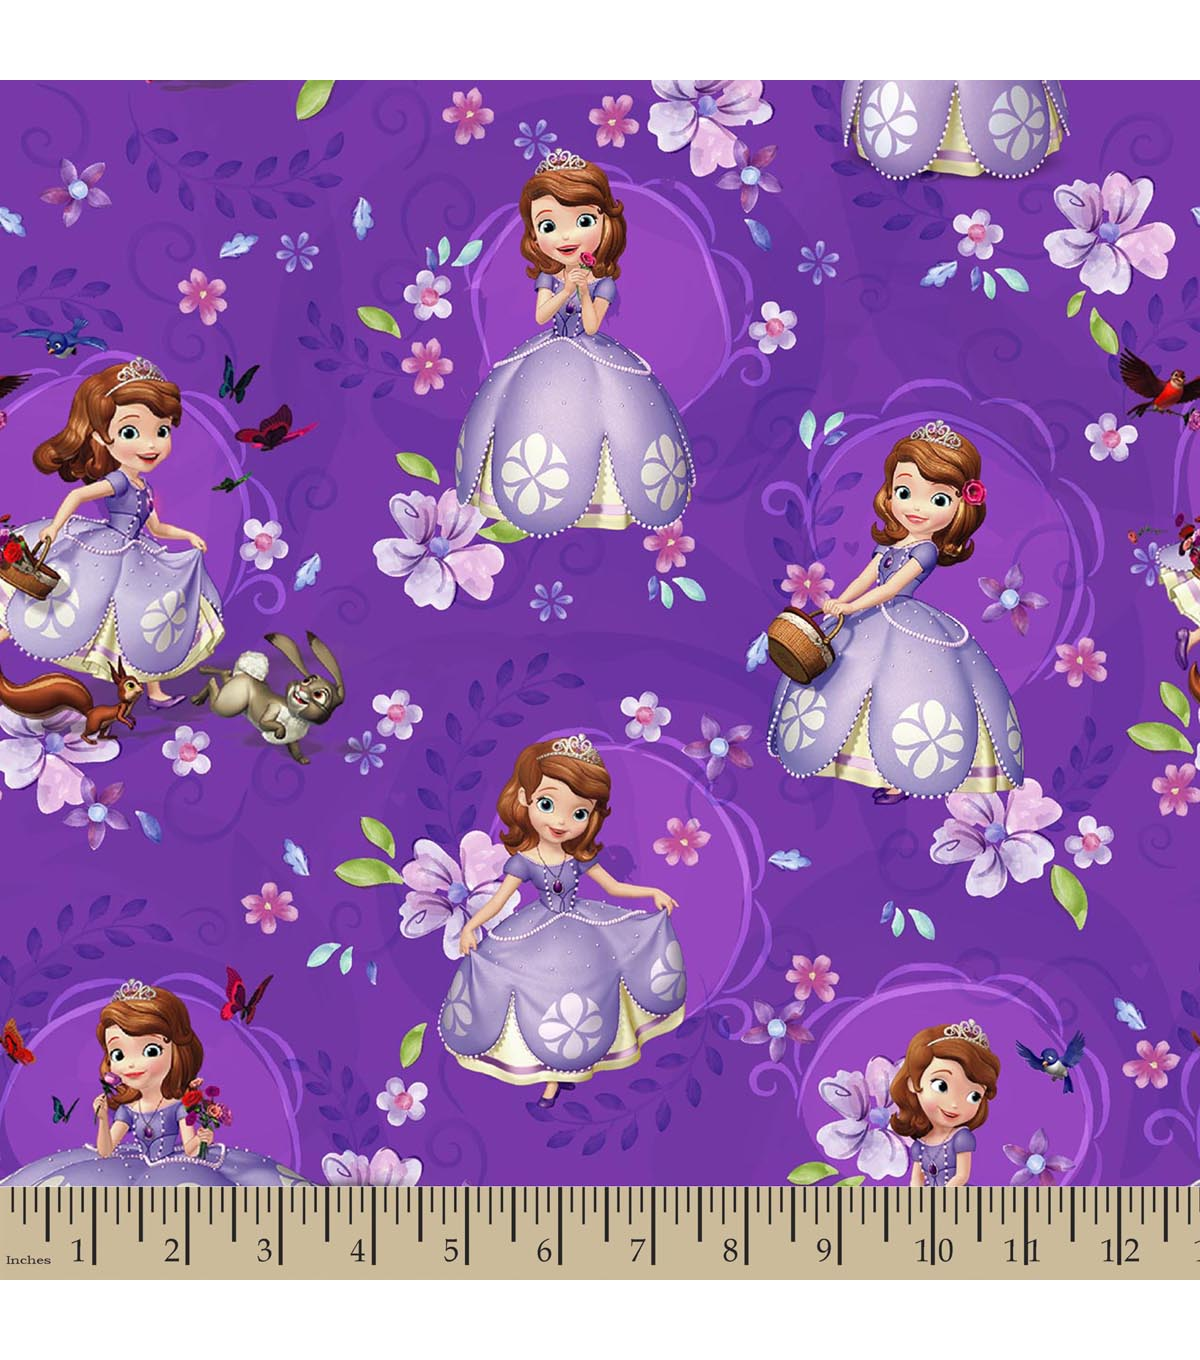 Fall Wallpaper 16 9 Disney Junior Sofia The First Print Fabric Joann